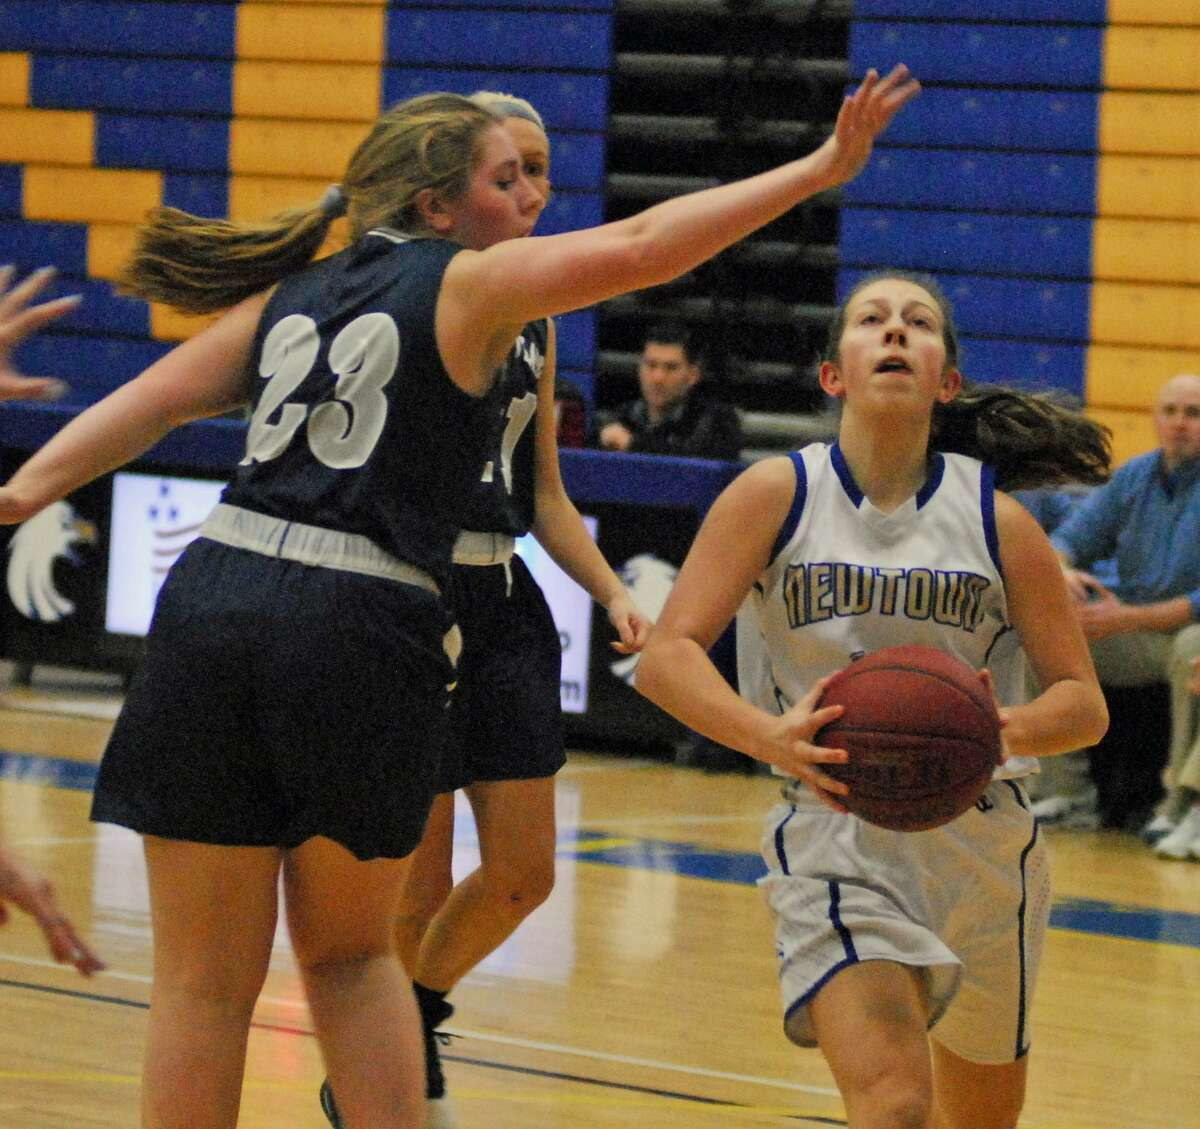 Newtown's Cyleigh Wilson converts a layup during a game against Immaculate in the SWC quarterfinals on Friday.